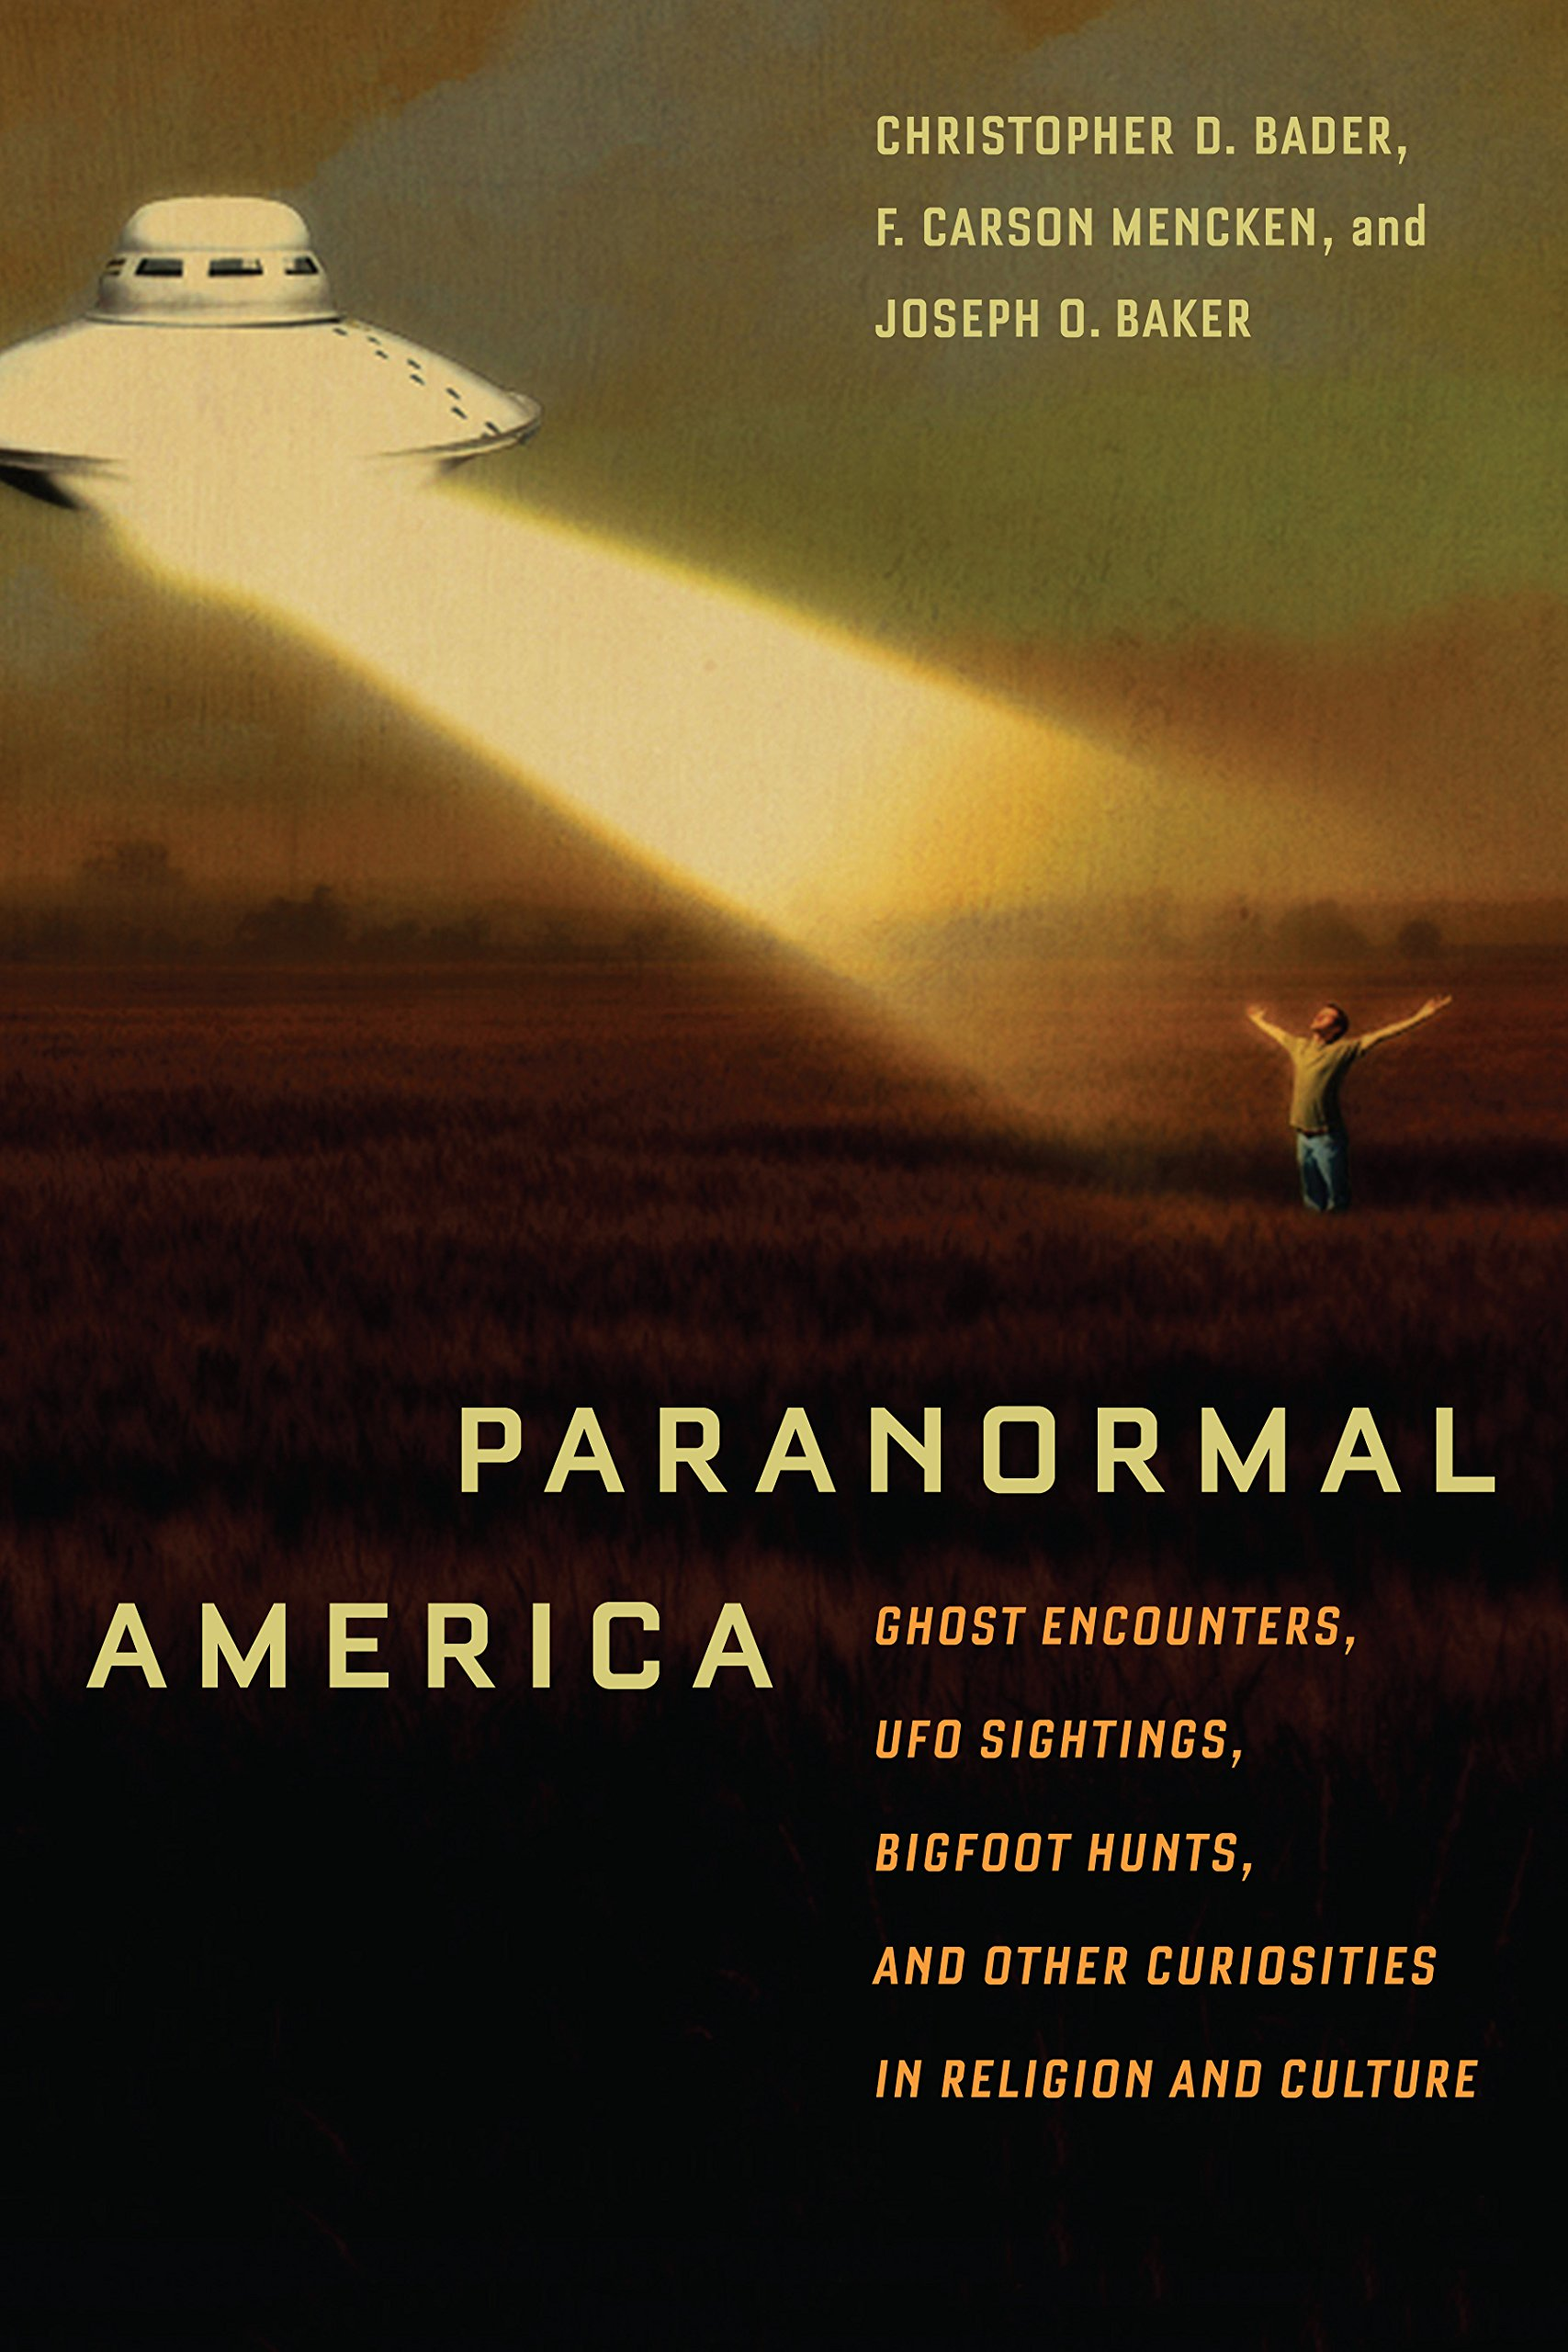 Paranormal America: Ghost Encounters, UFO Sightings, Bigfoot Hunts, and Other Curiosities in Religion and Culture: Christopher Bader, F. Carson Mencken, ...